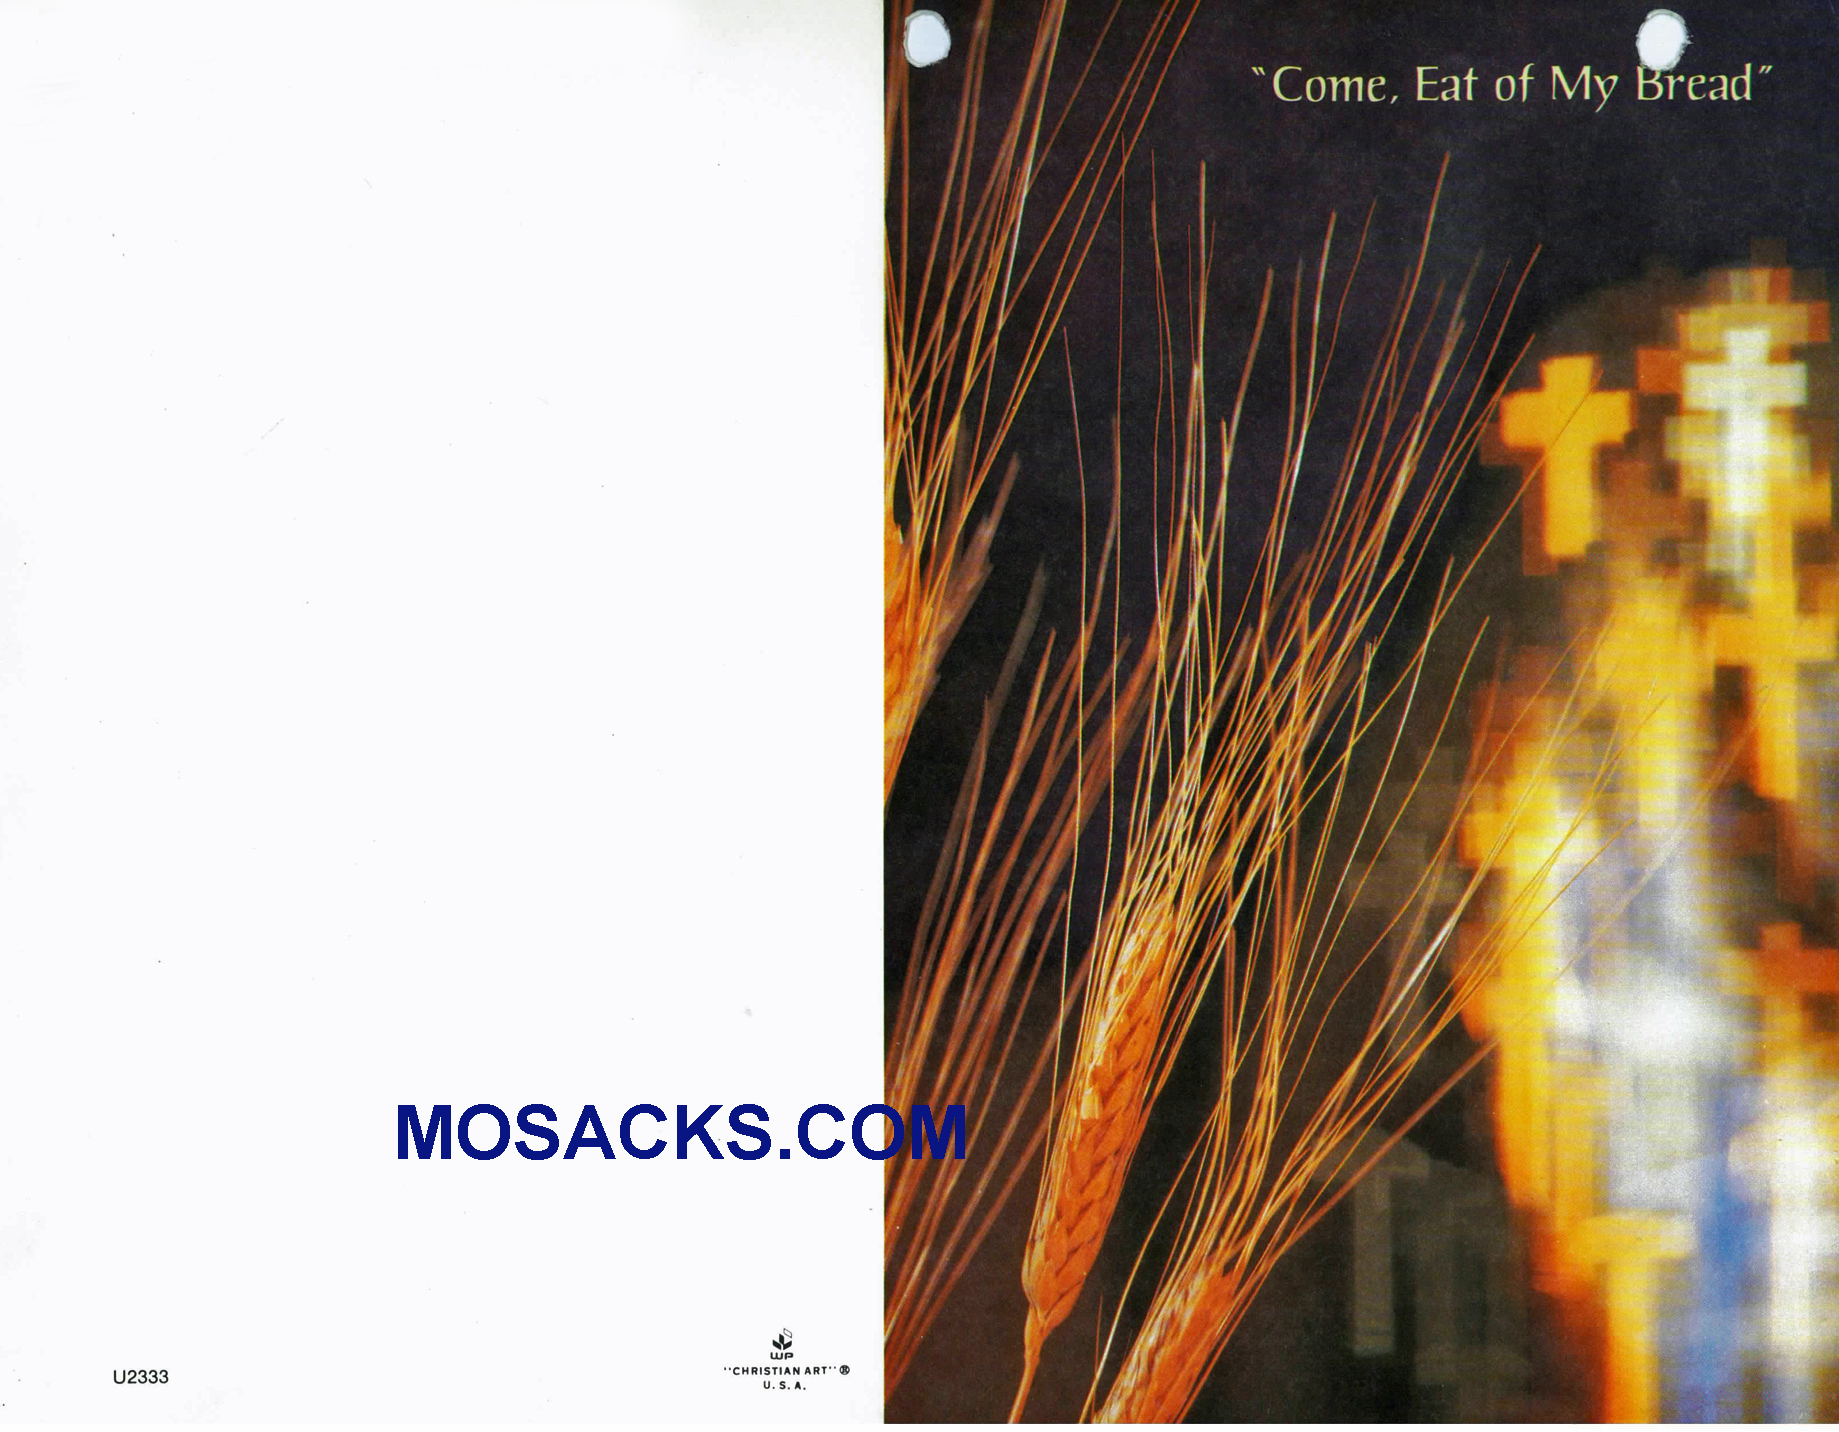 Bulletin Covers Come Eat Of My Bread 100 Pack-U2333, Communion Cover